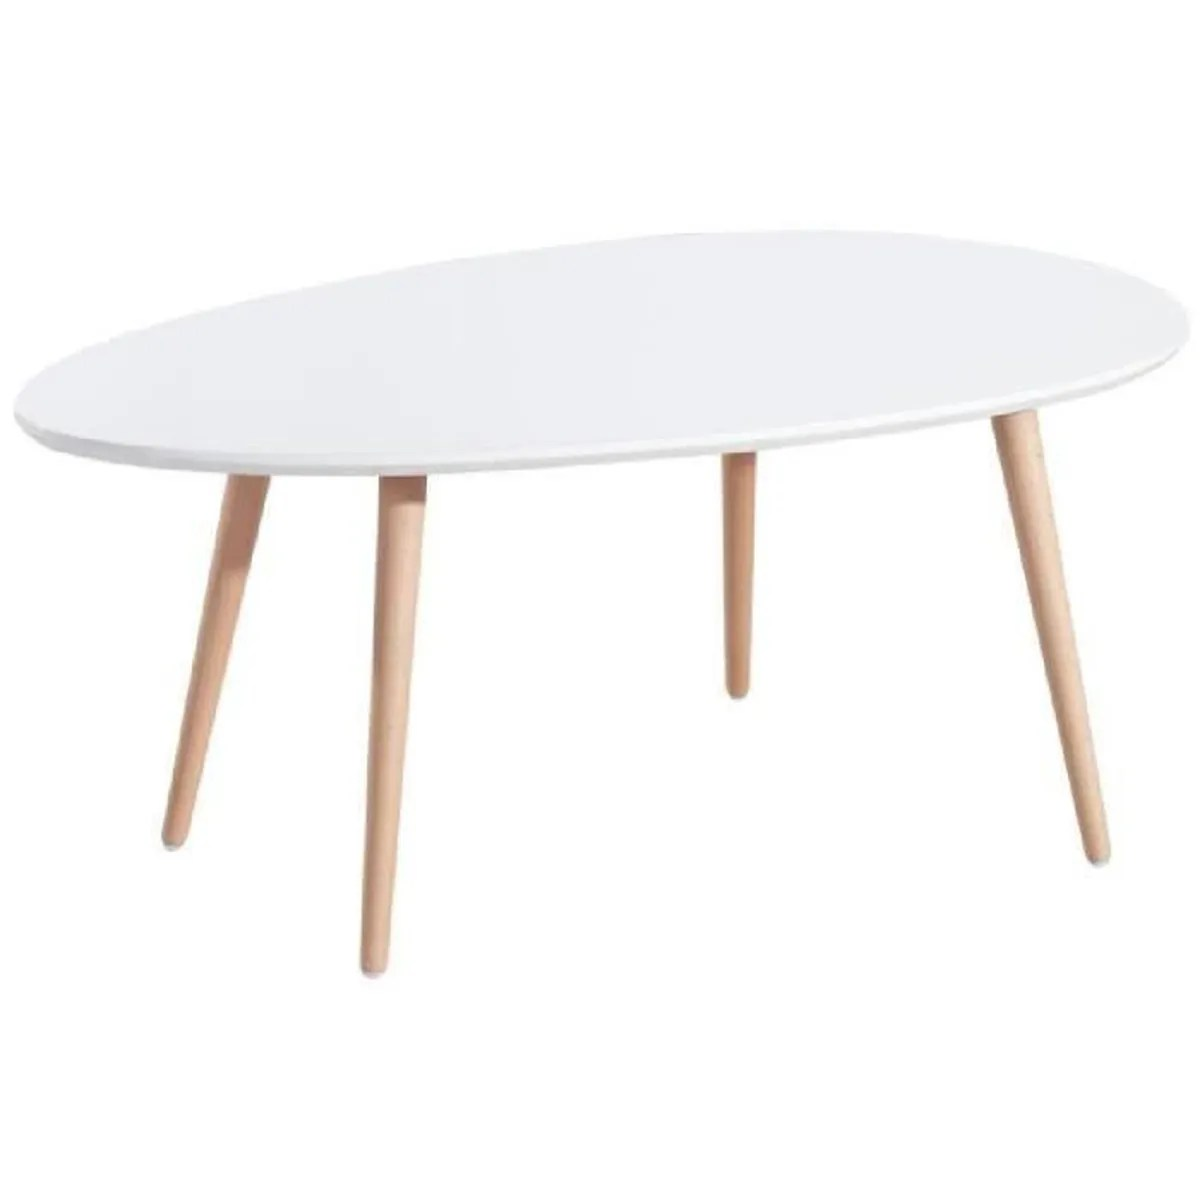 Achat Table Basse Pas Cher Table Basse Scandinave Achat Vente Table Basse